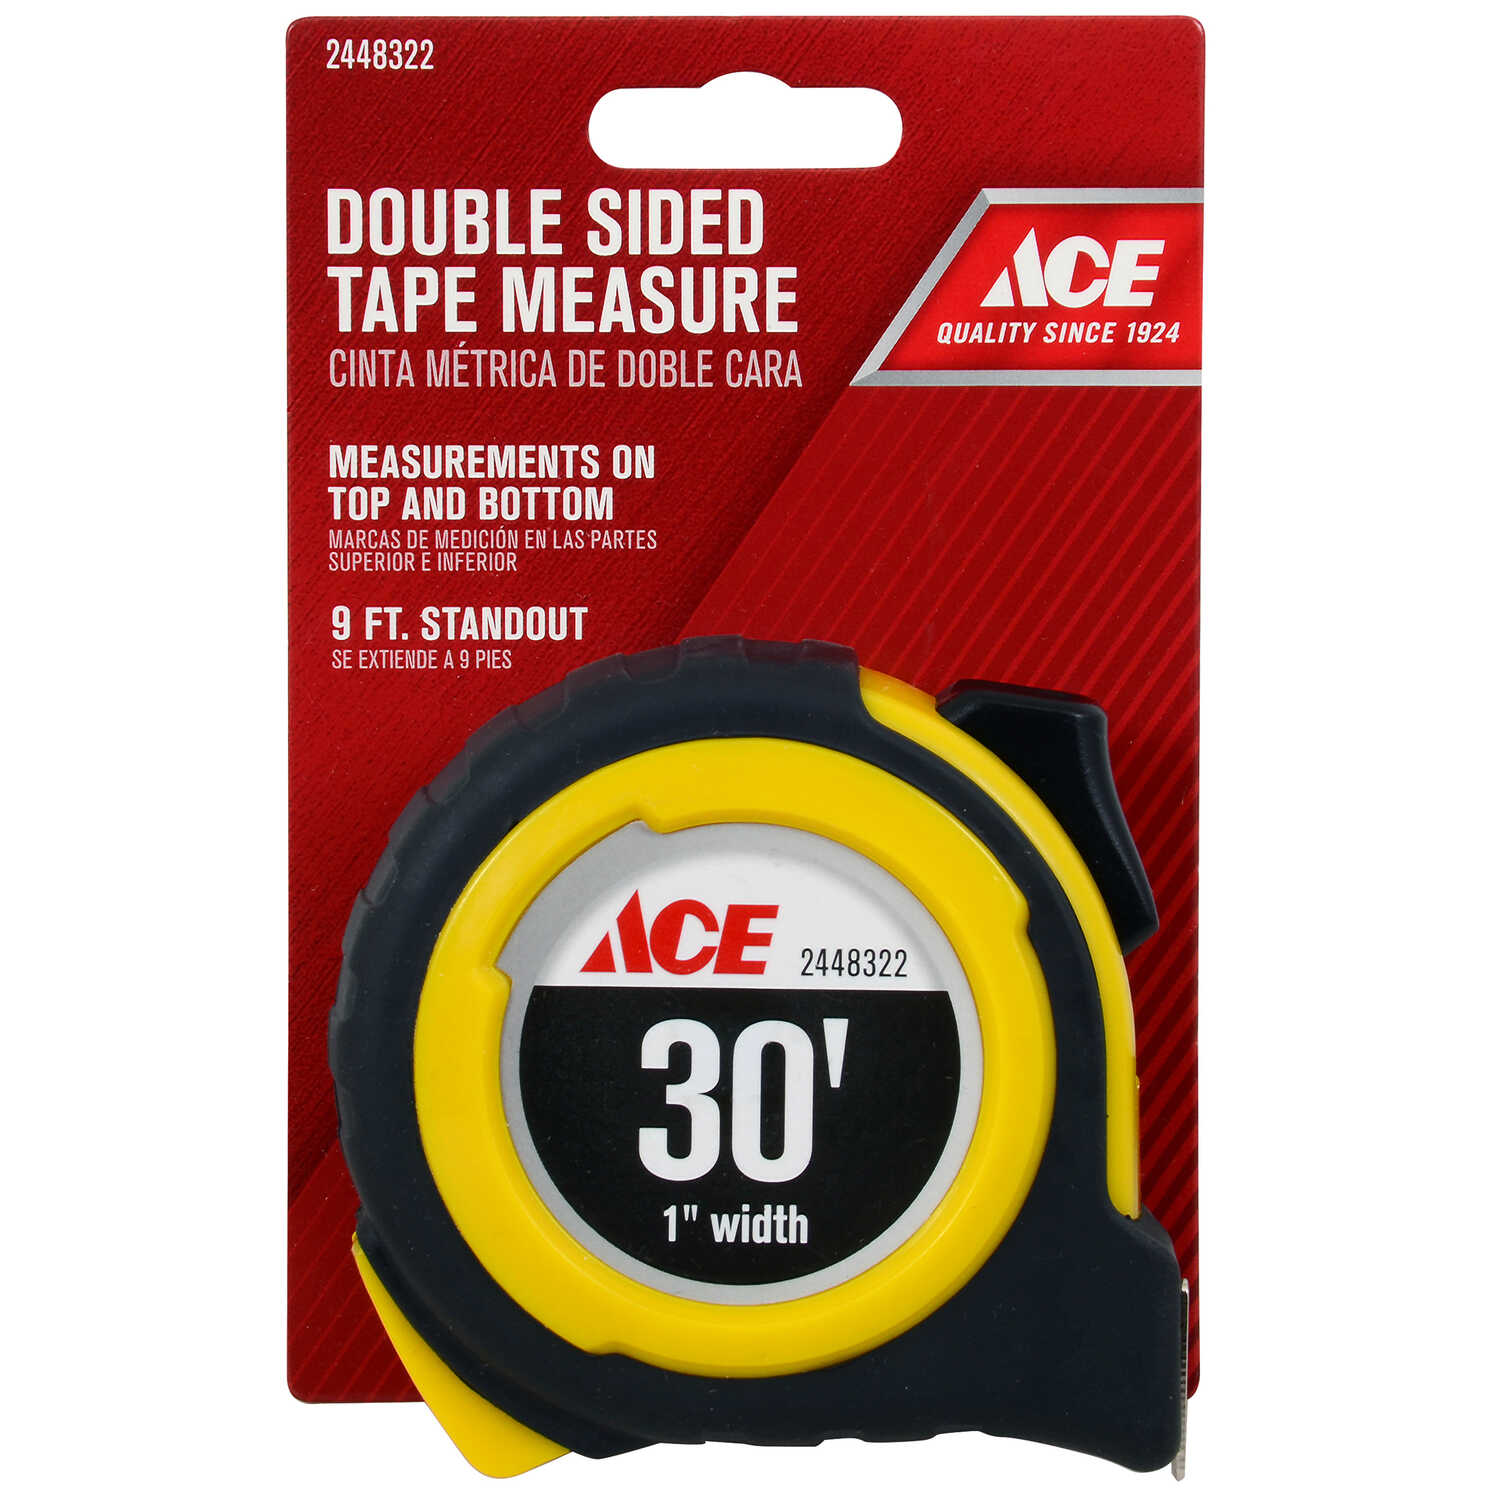 Ace  30 ft. L x 1 in. W Double Sided  Tape Measure  Yellow  1 pk